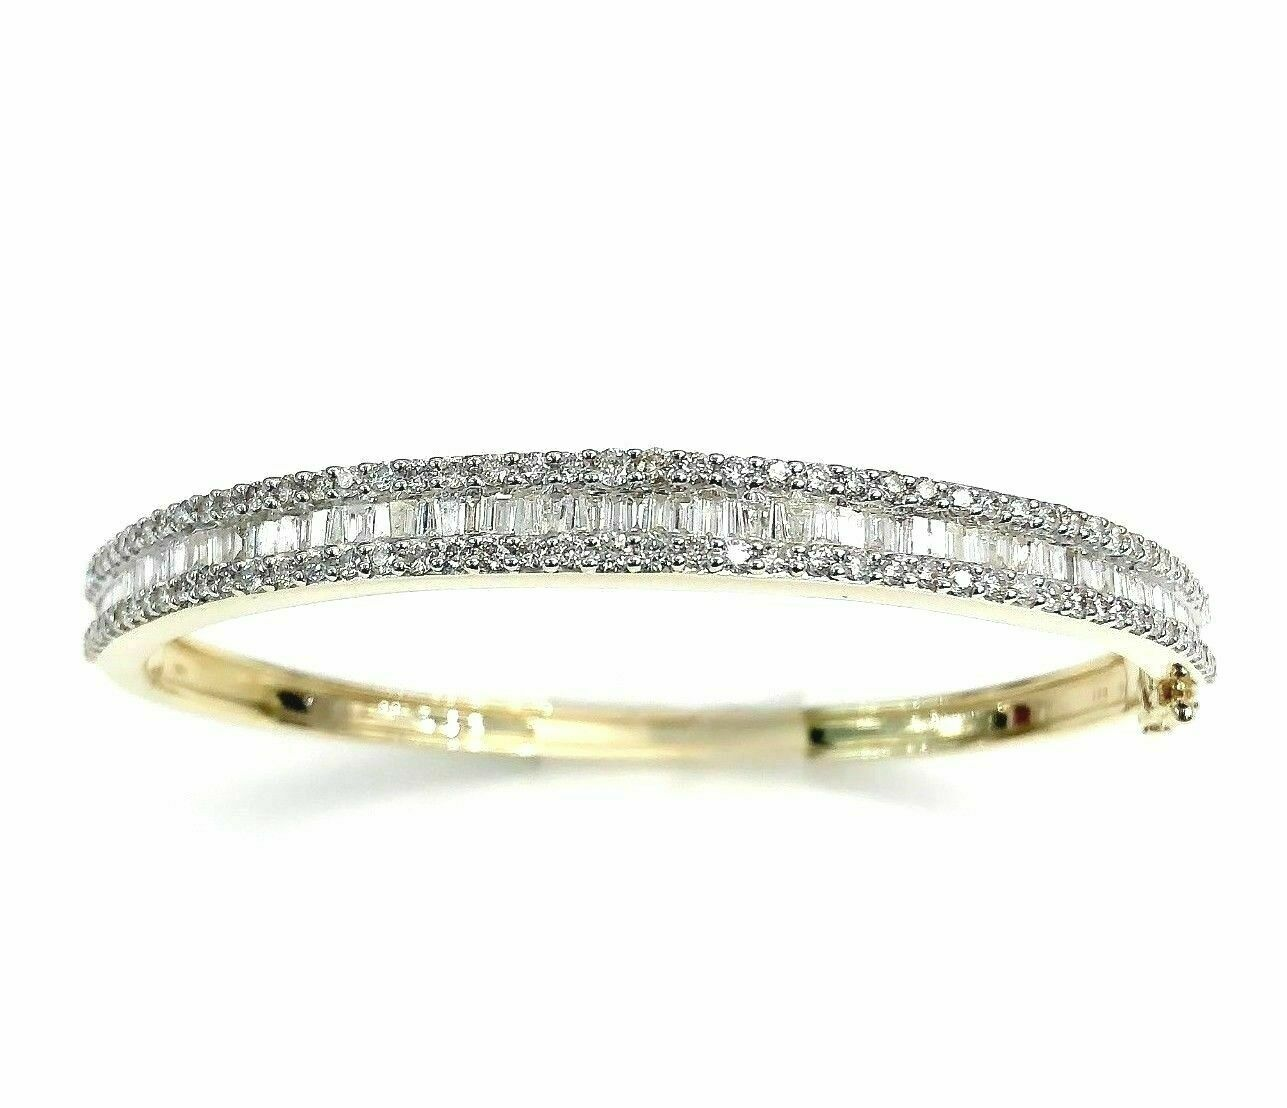 3.00 Carats t.w. Round and Baguette Diamond Bangle Bracelet 14K Gold 21 Grams